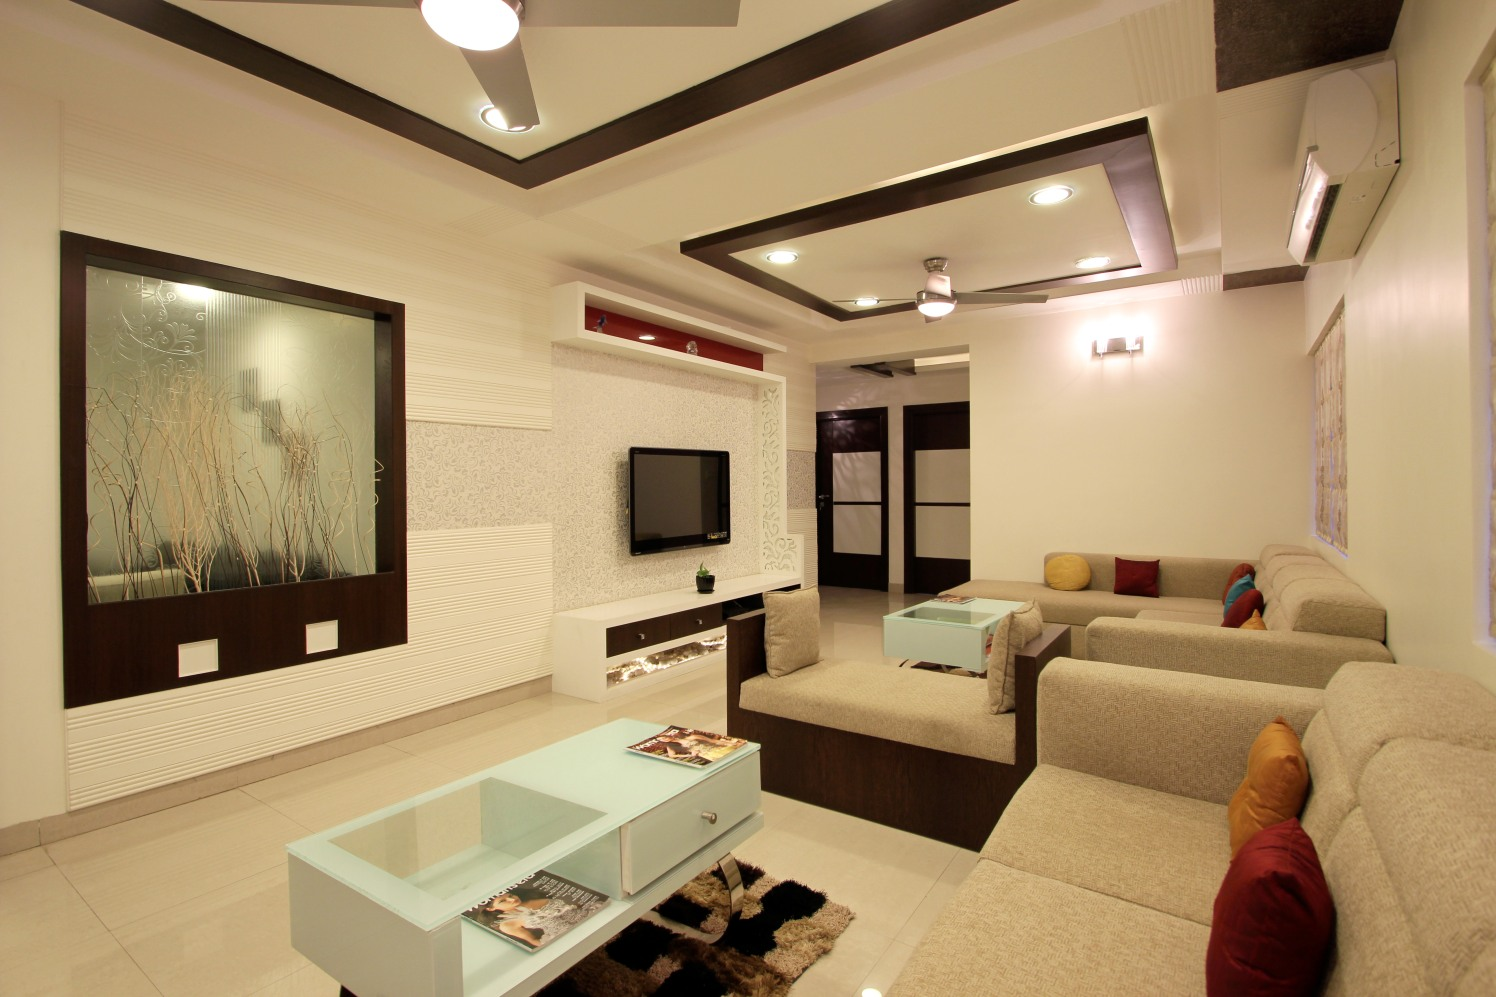 Living Room With Modern False Ceiling by Nandigam Harish Living-room Modern | Interior Design Photos & Ideas